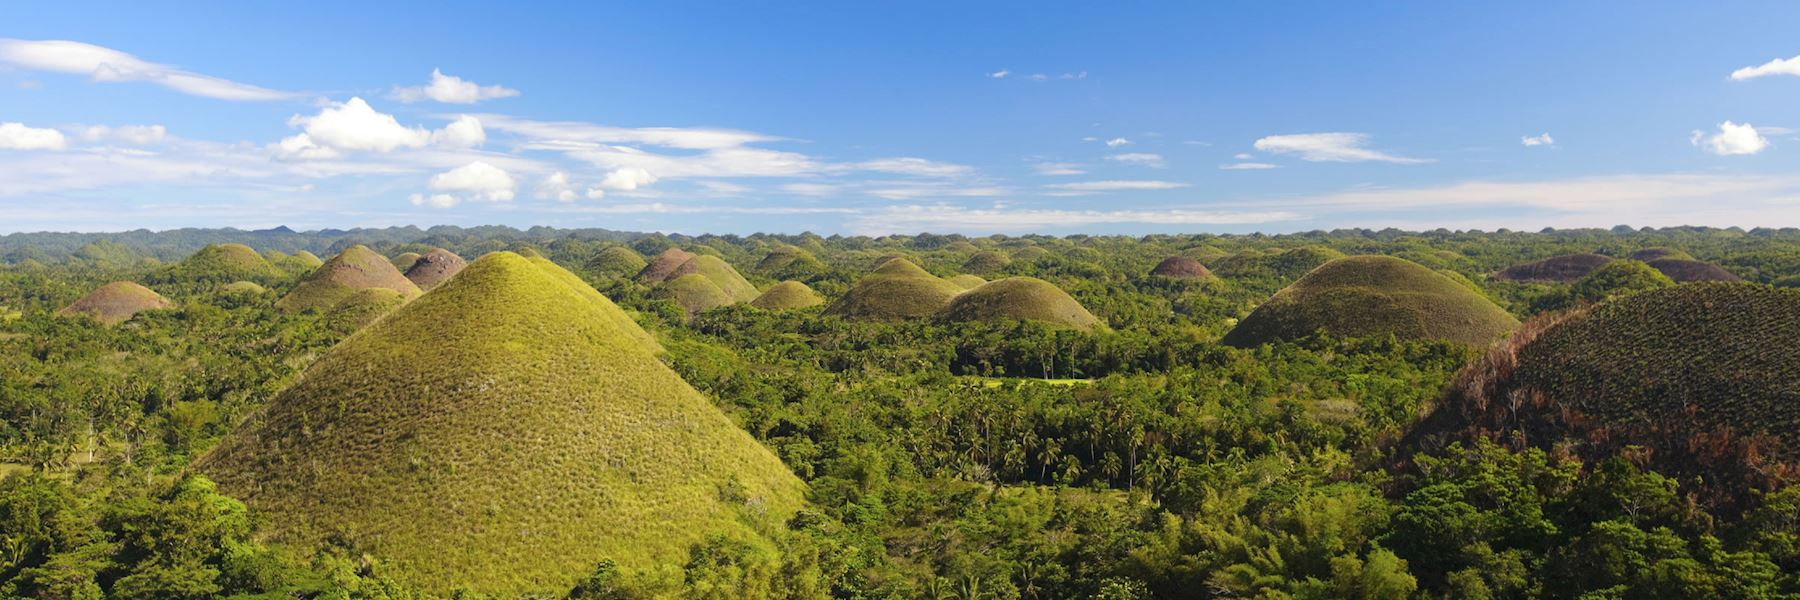 Things to do in the Philippines